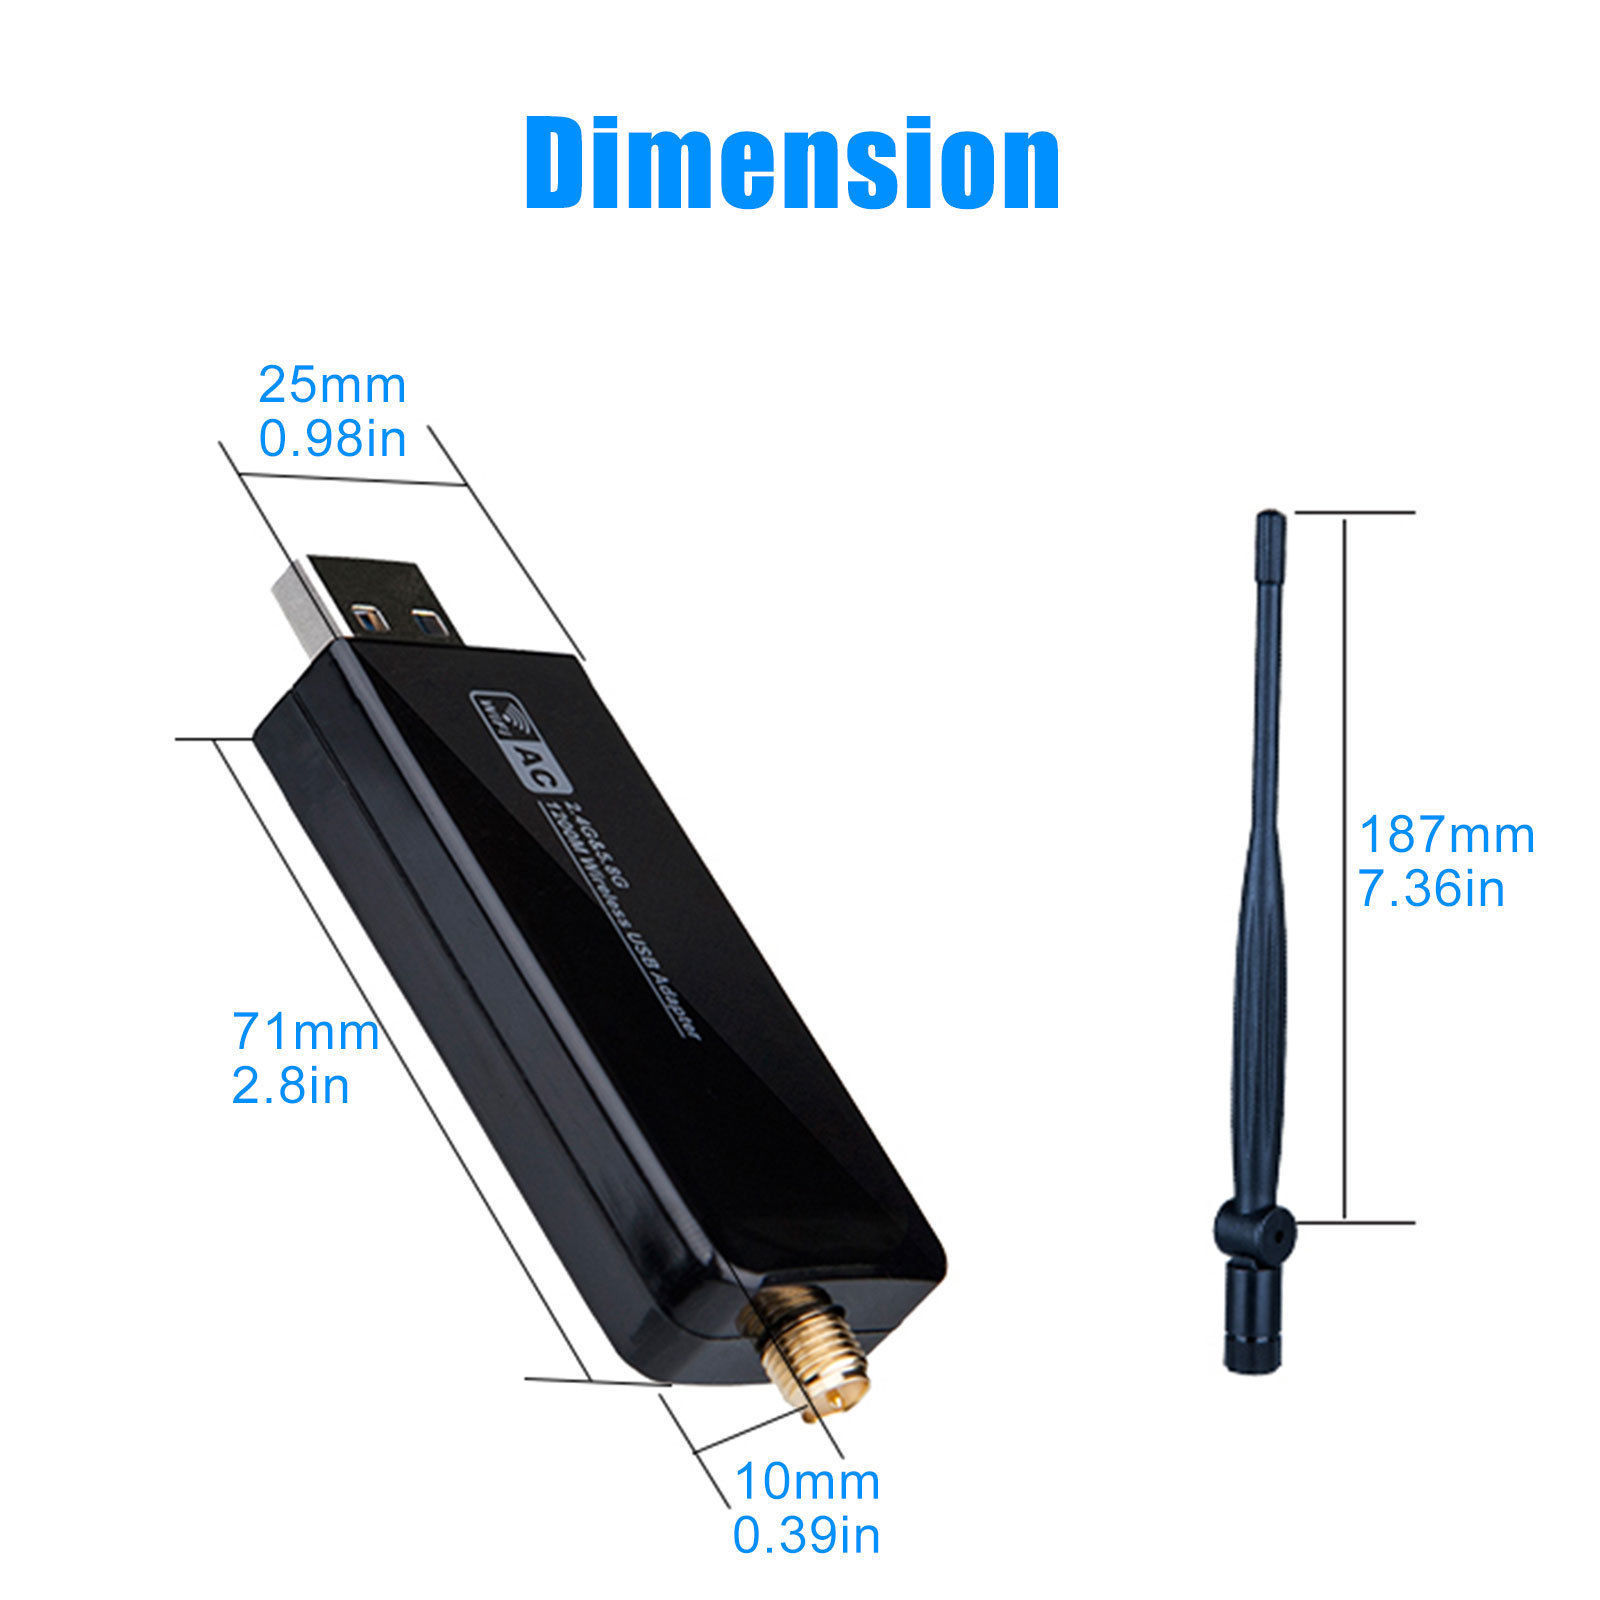 1200Mbps-Dual-Band-2-4GHz-5GHz-Wireless-USB-3-0-WiFi-Adapter-802-11AC-w-Antenna thumbnail 11